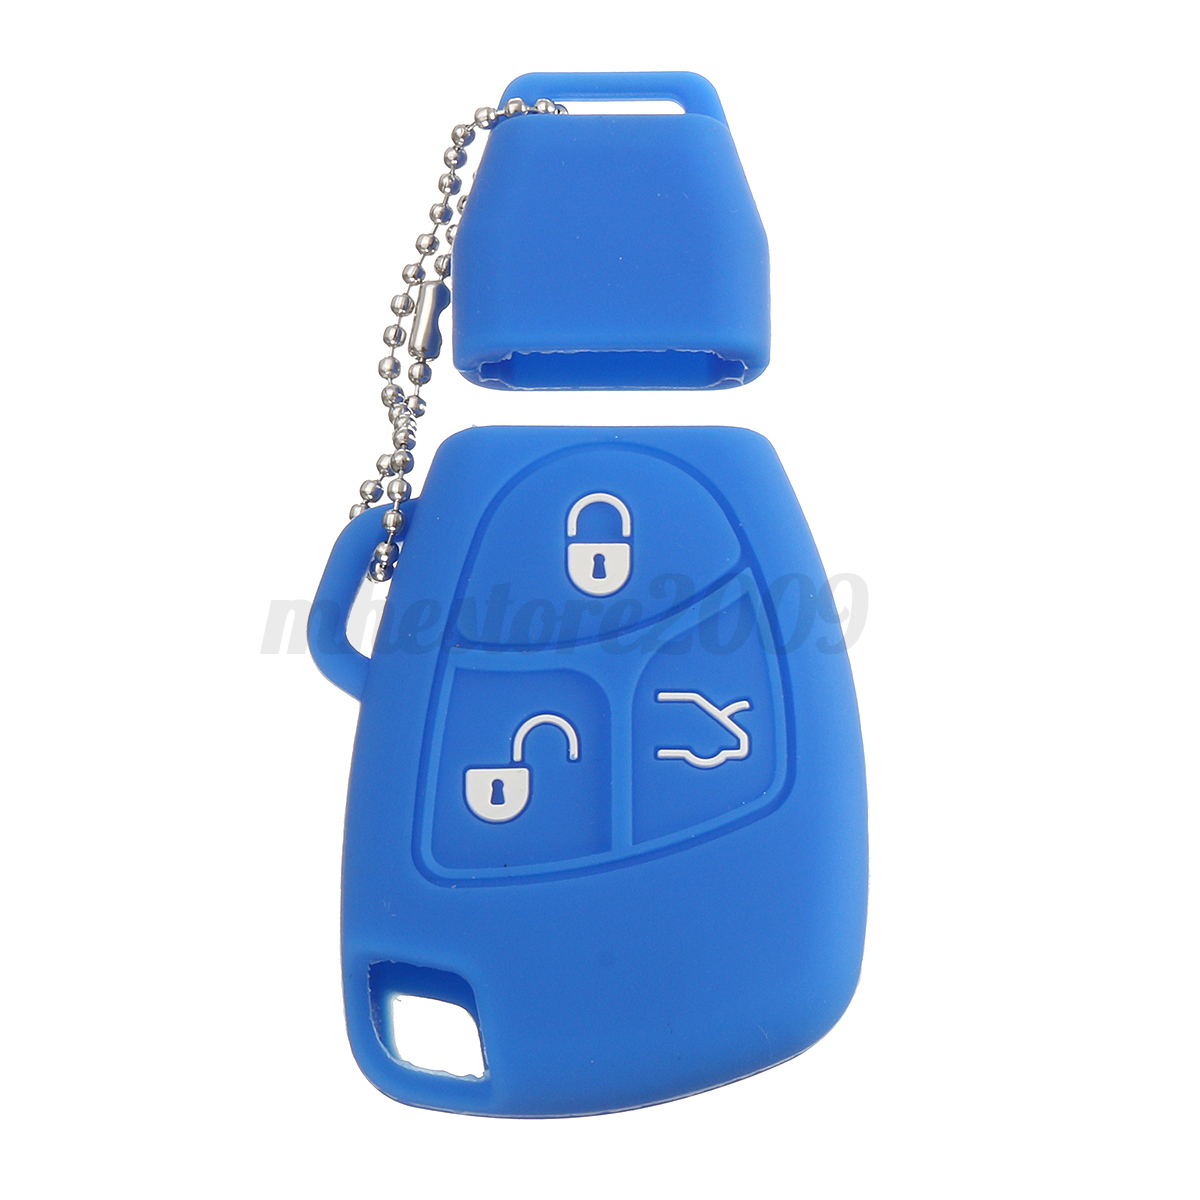 Silicone-3-Buttons-Remote-Key-Fob-Case-Shell-Cover-Holders-For-Mercedes-Benz miniature 14